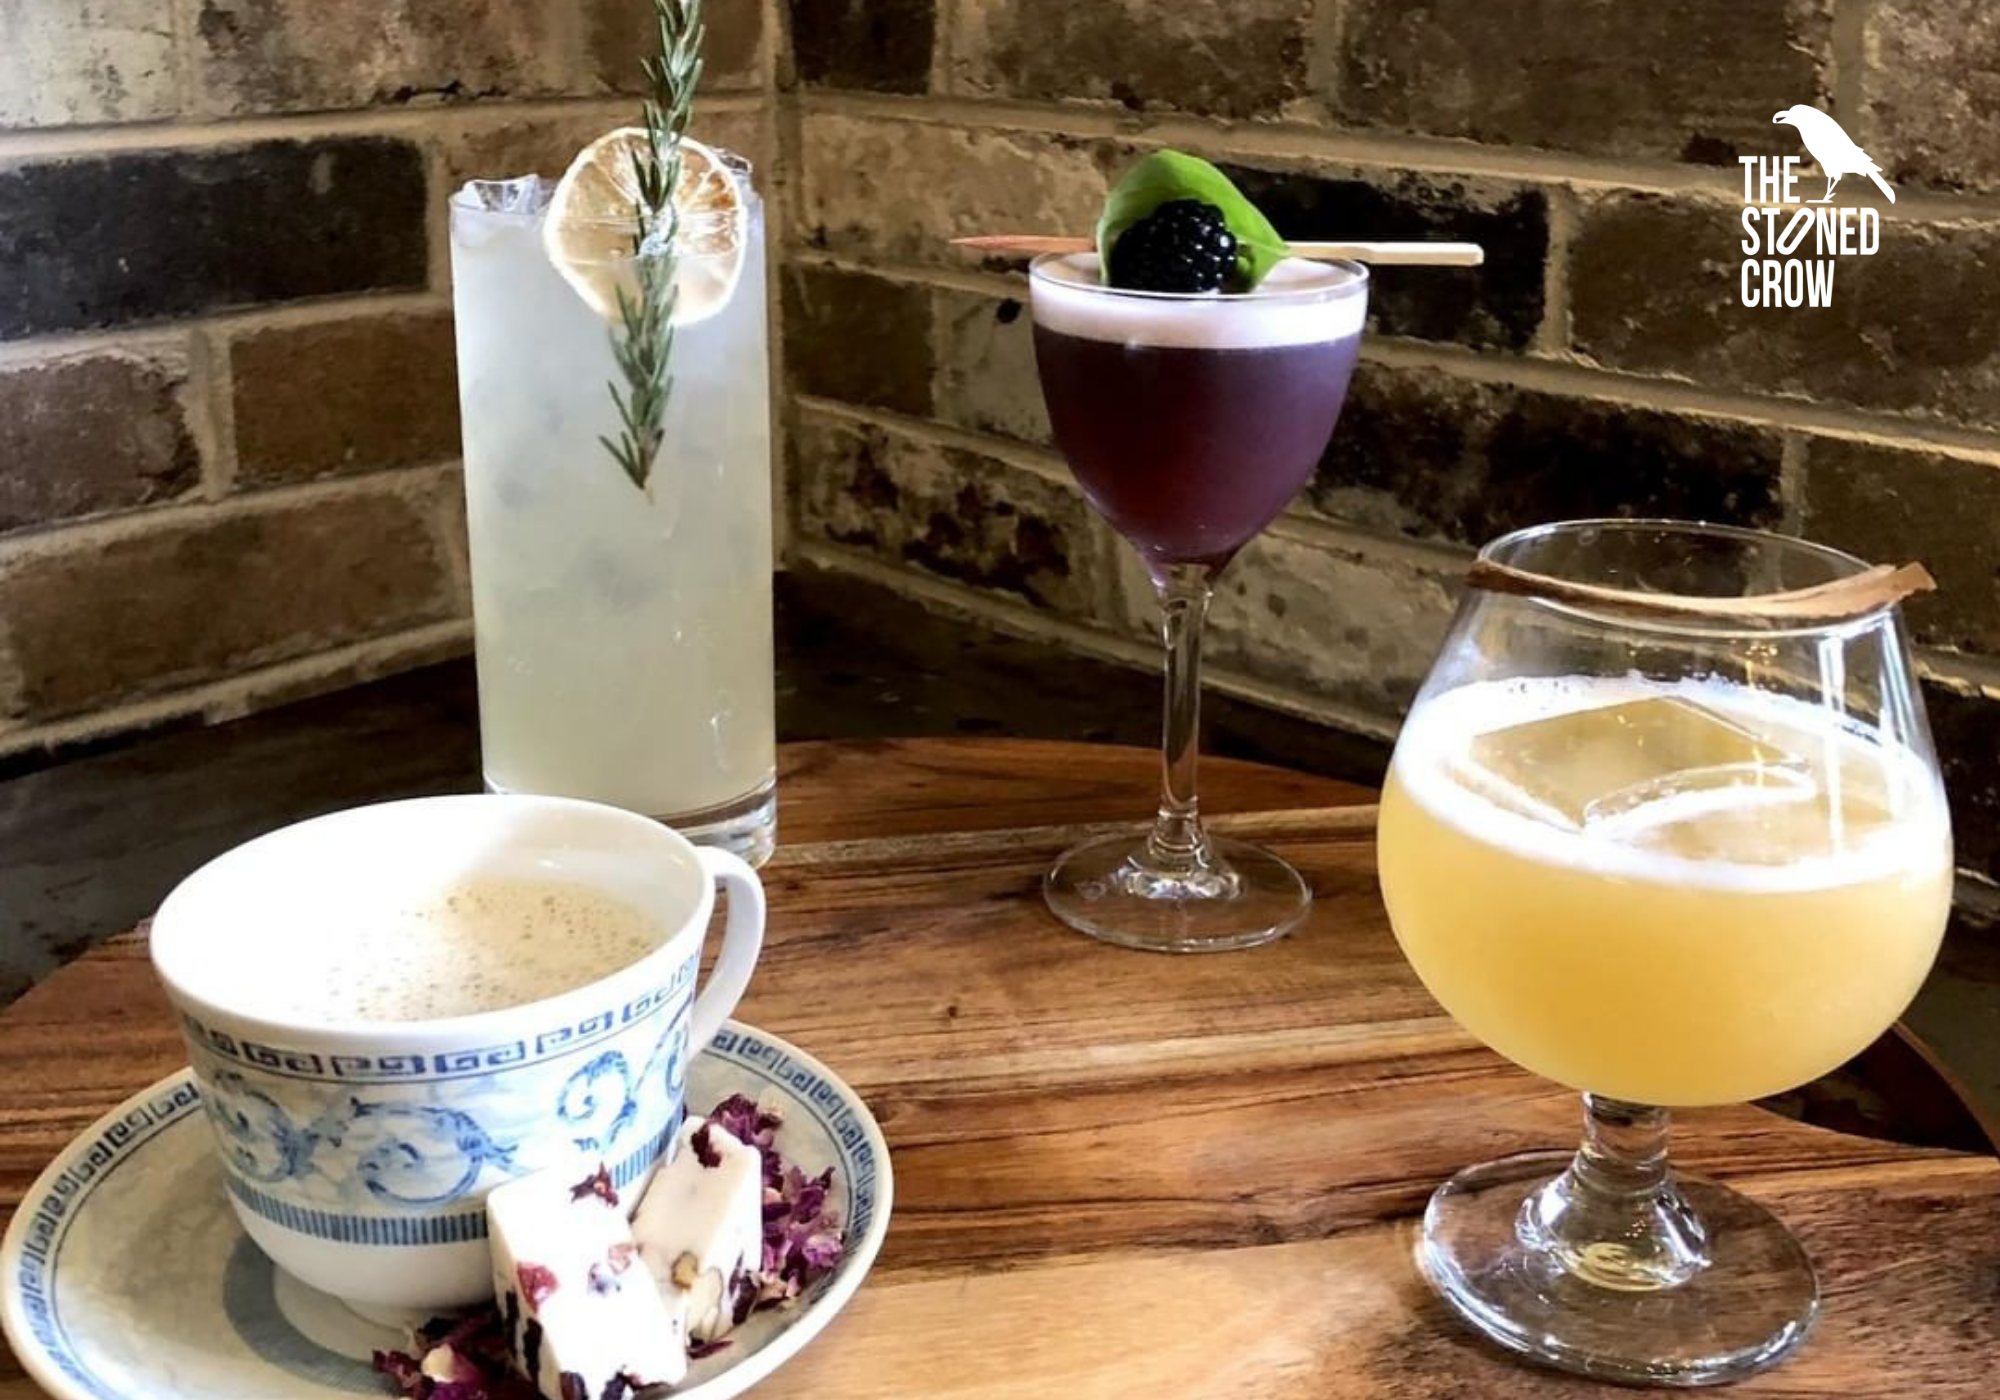 Four different winter-themed cocktails in different shaped glasses